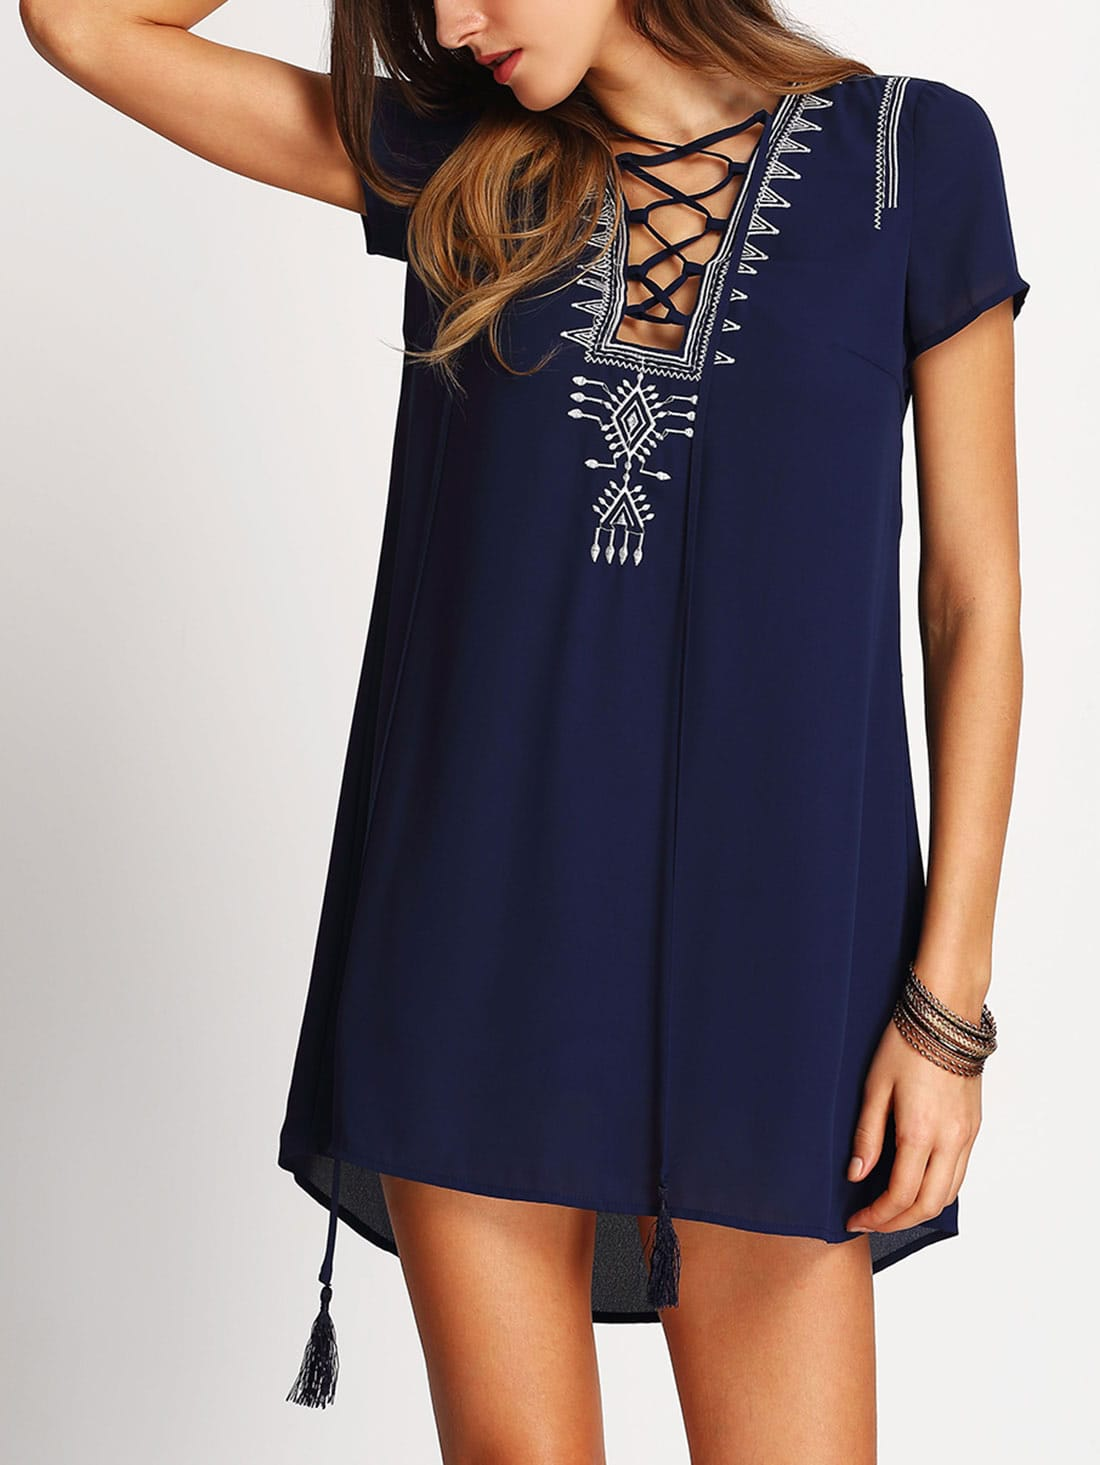 Tasseled Lace Up Embroidered Dress